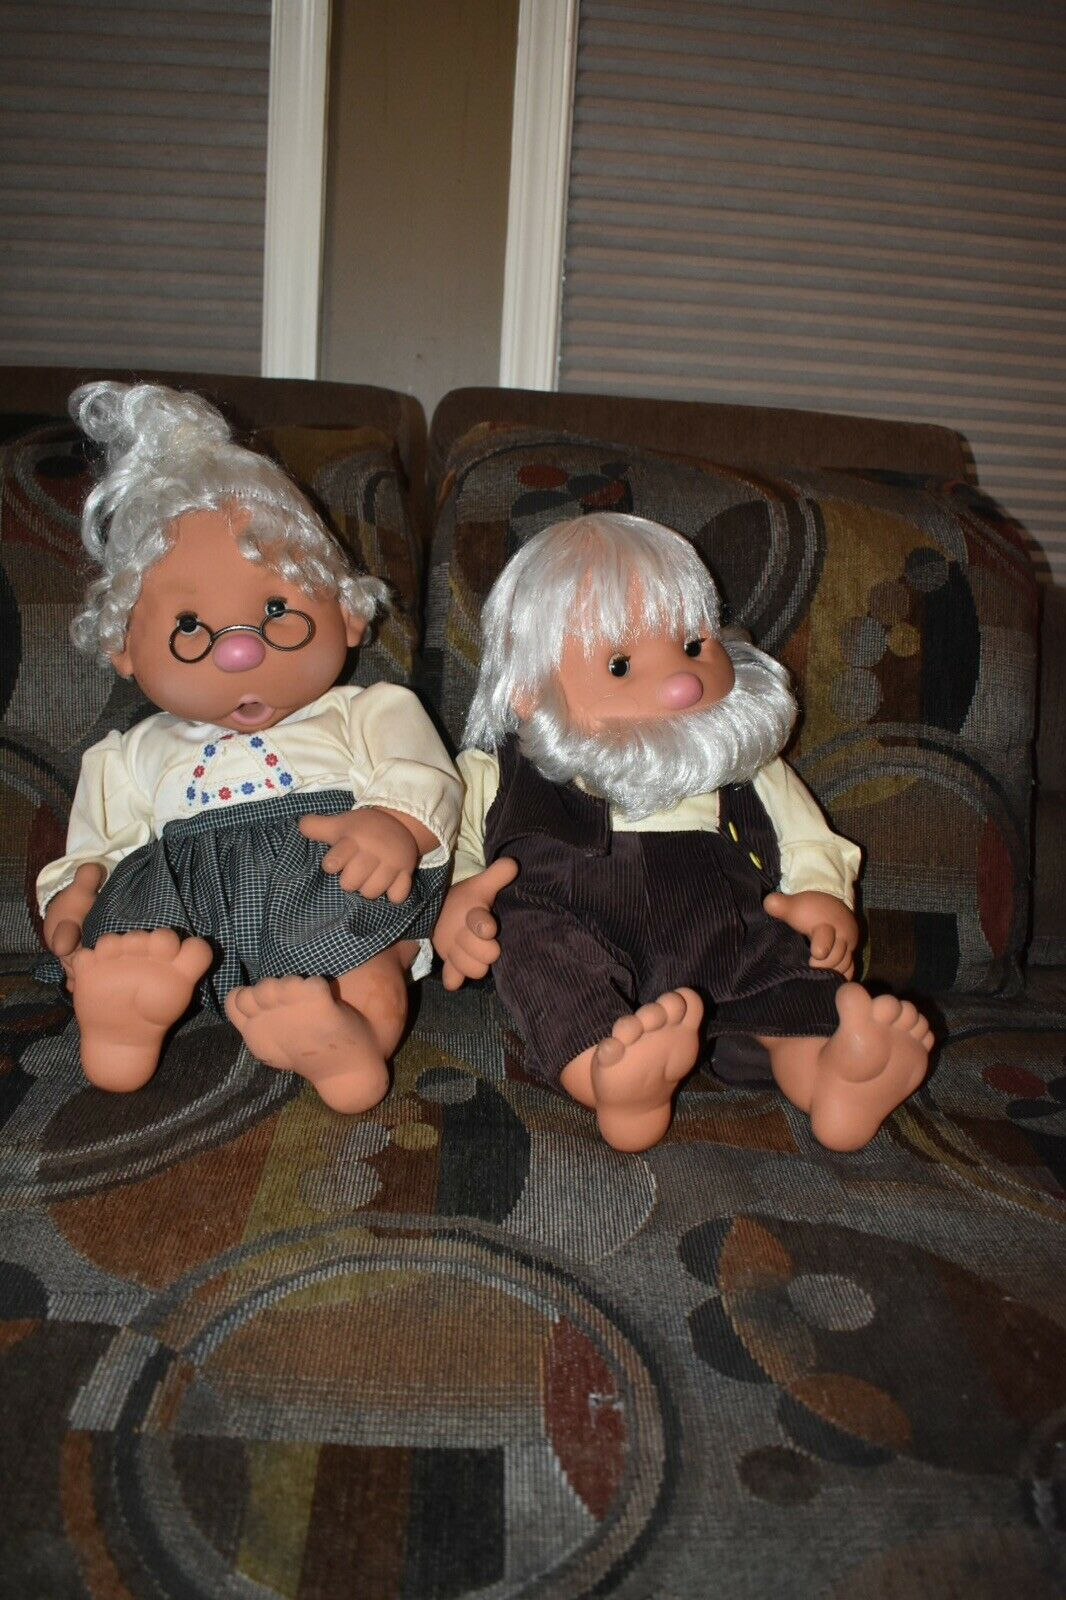 Bambo Thumb Sucking Grandma and Grandpa Dolls by Vicma Made in Spain 1984